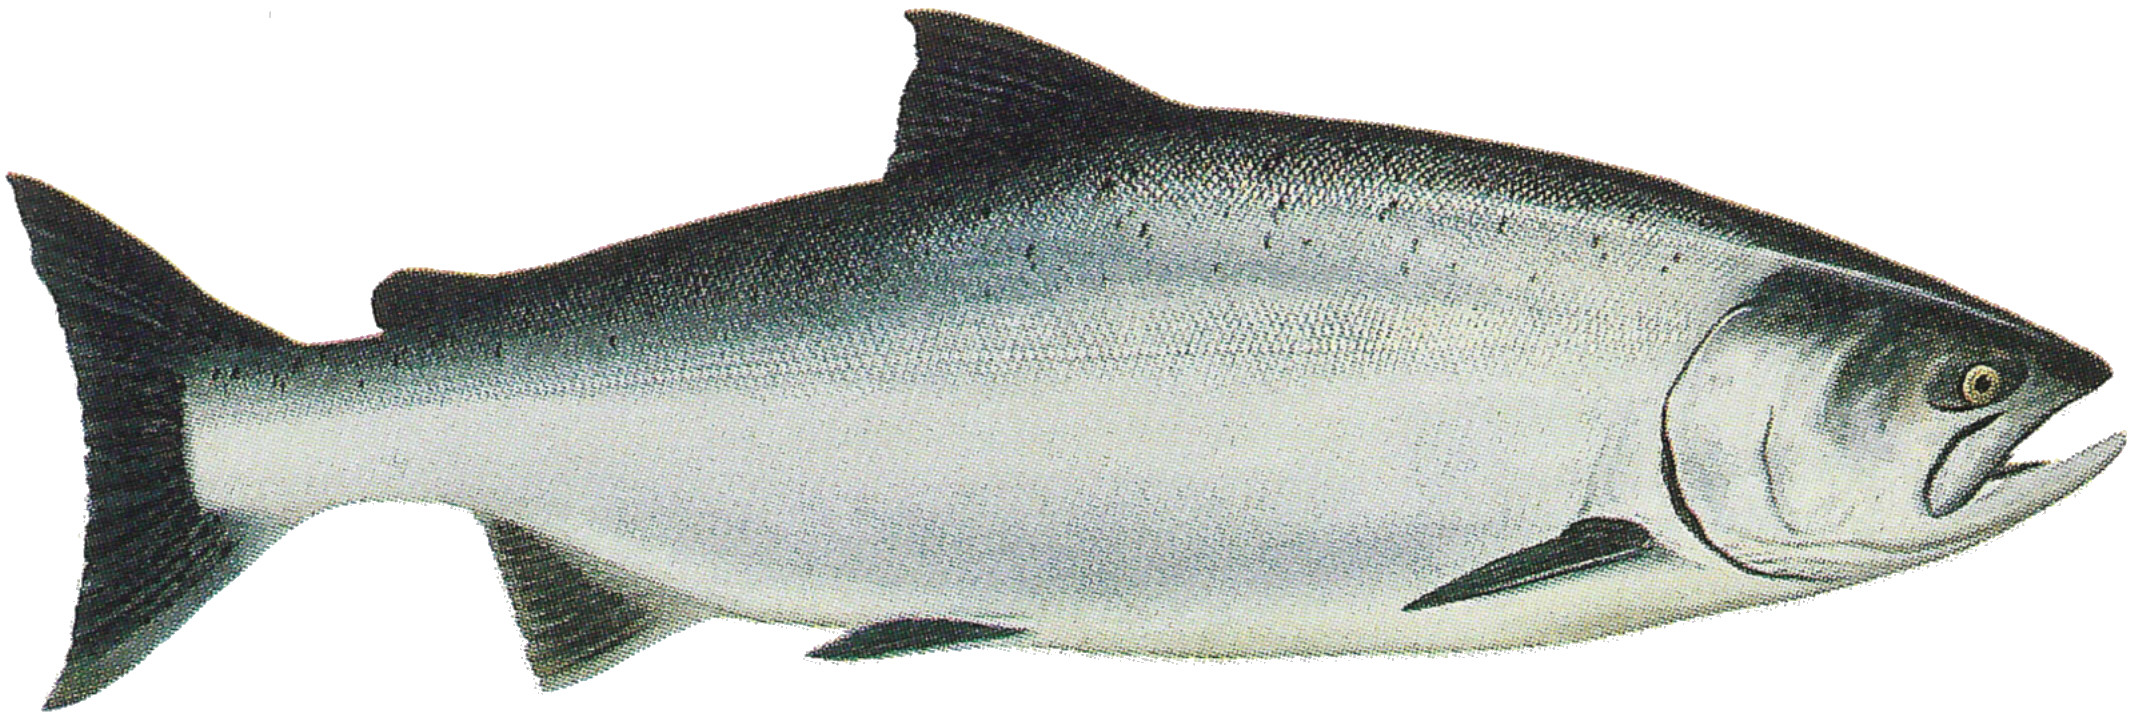 Chinook salmon edr for Chinook salmon fishing